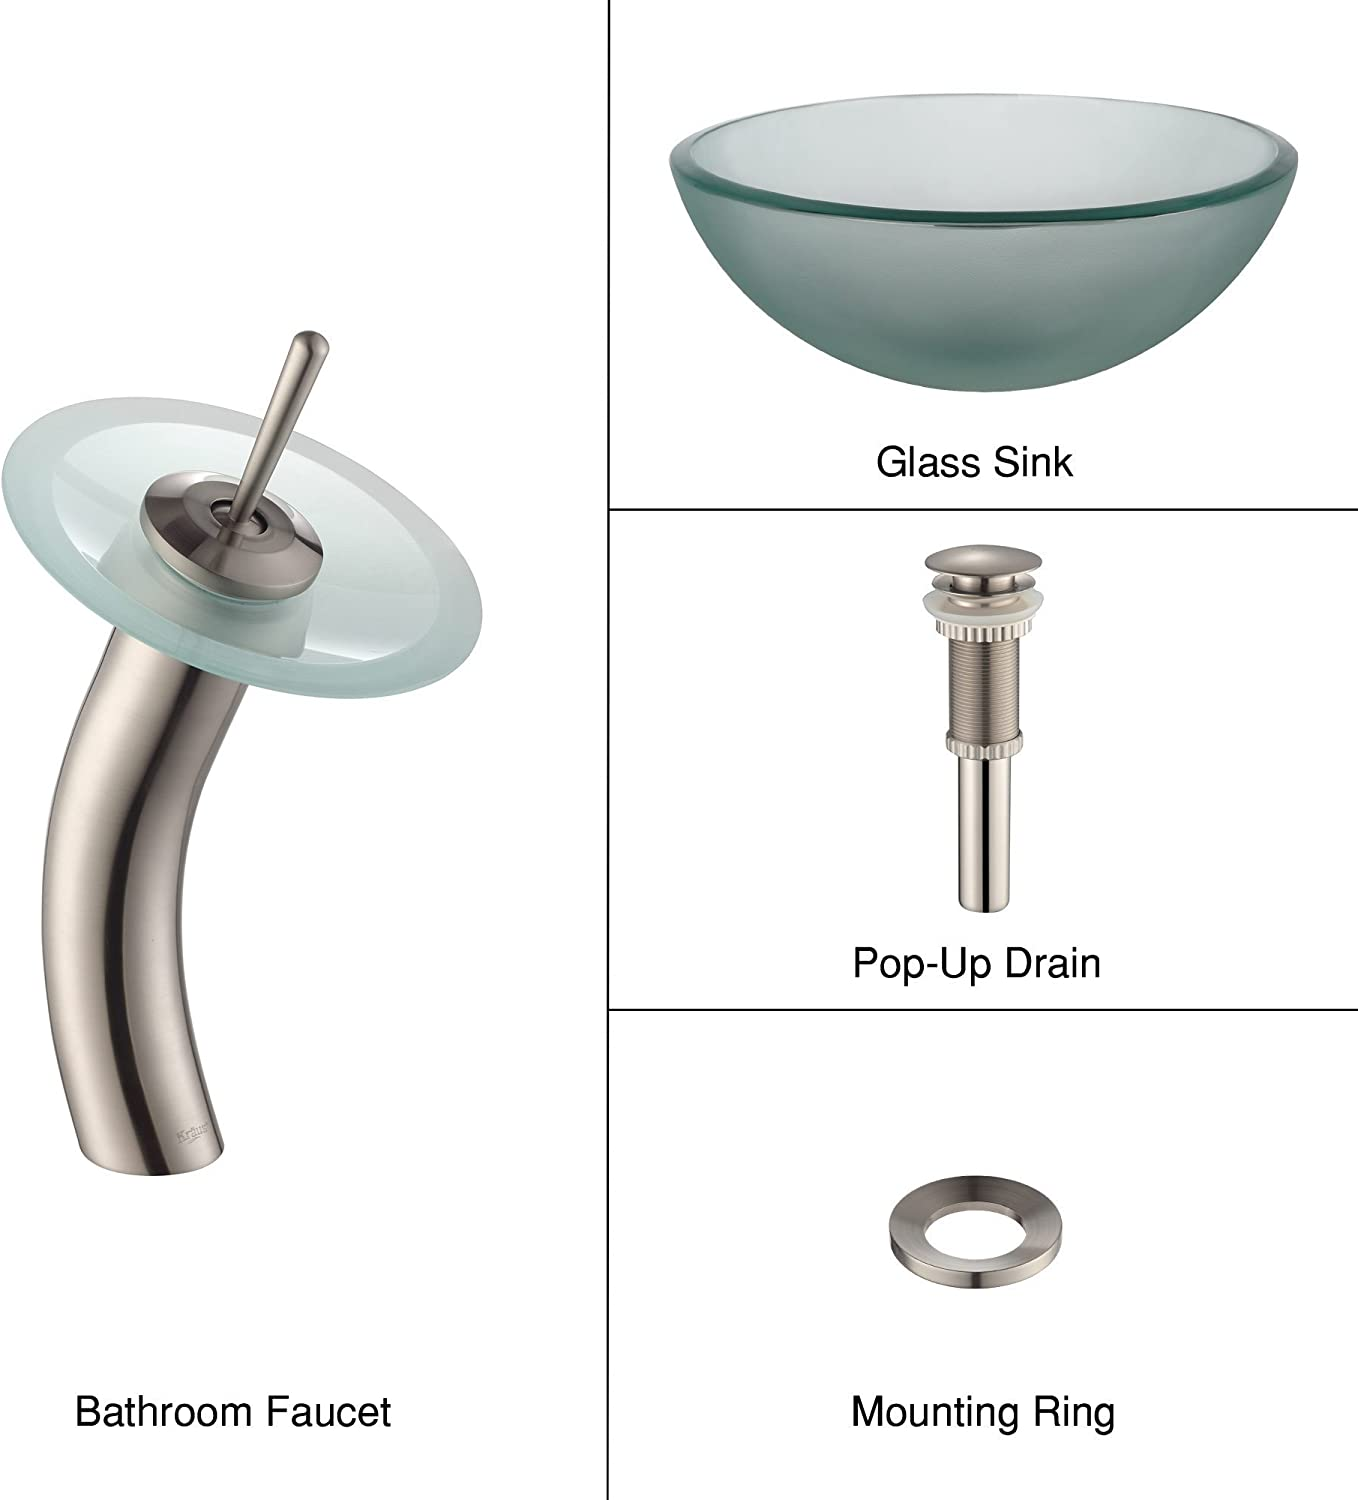 Kraus C-GV-101FR-14-12mm-10SN Frosted 14 Glass Vessel Sink and Waterfall Faucet Satin Nickel